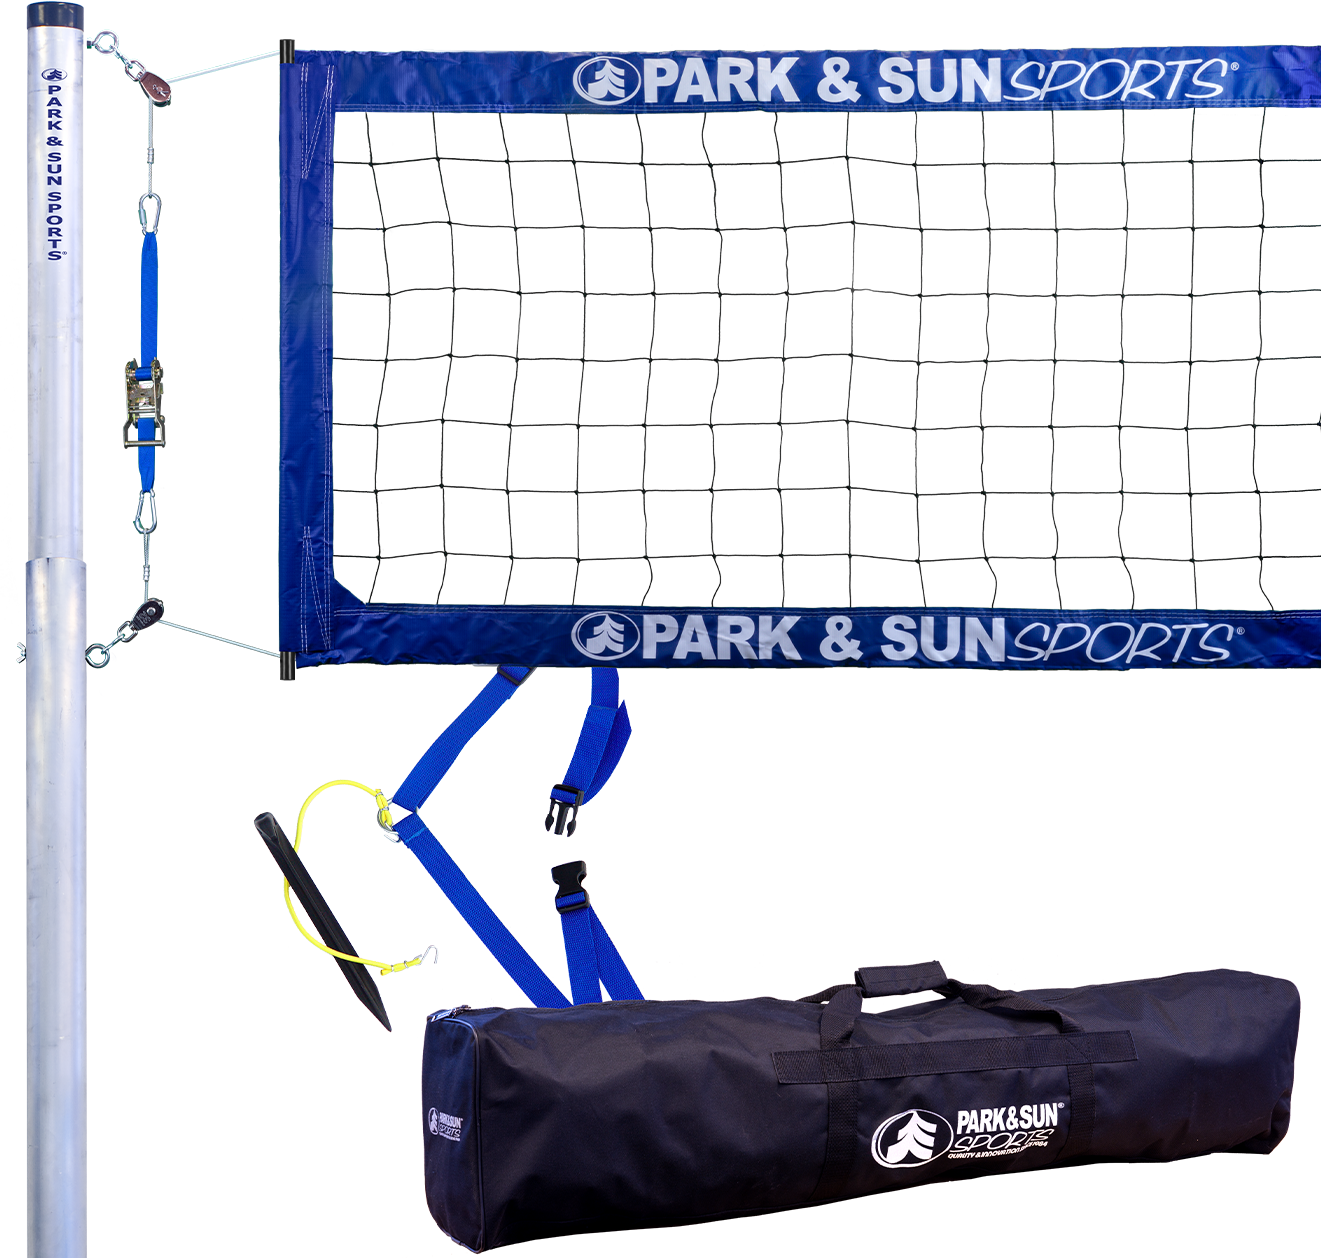 Telescoping Tournament 4000 Professional Grade Outdoor